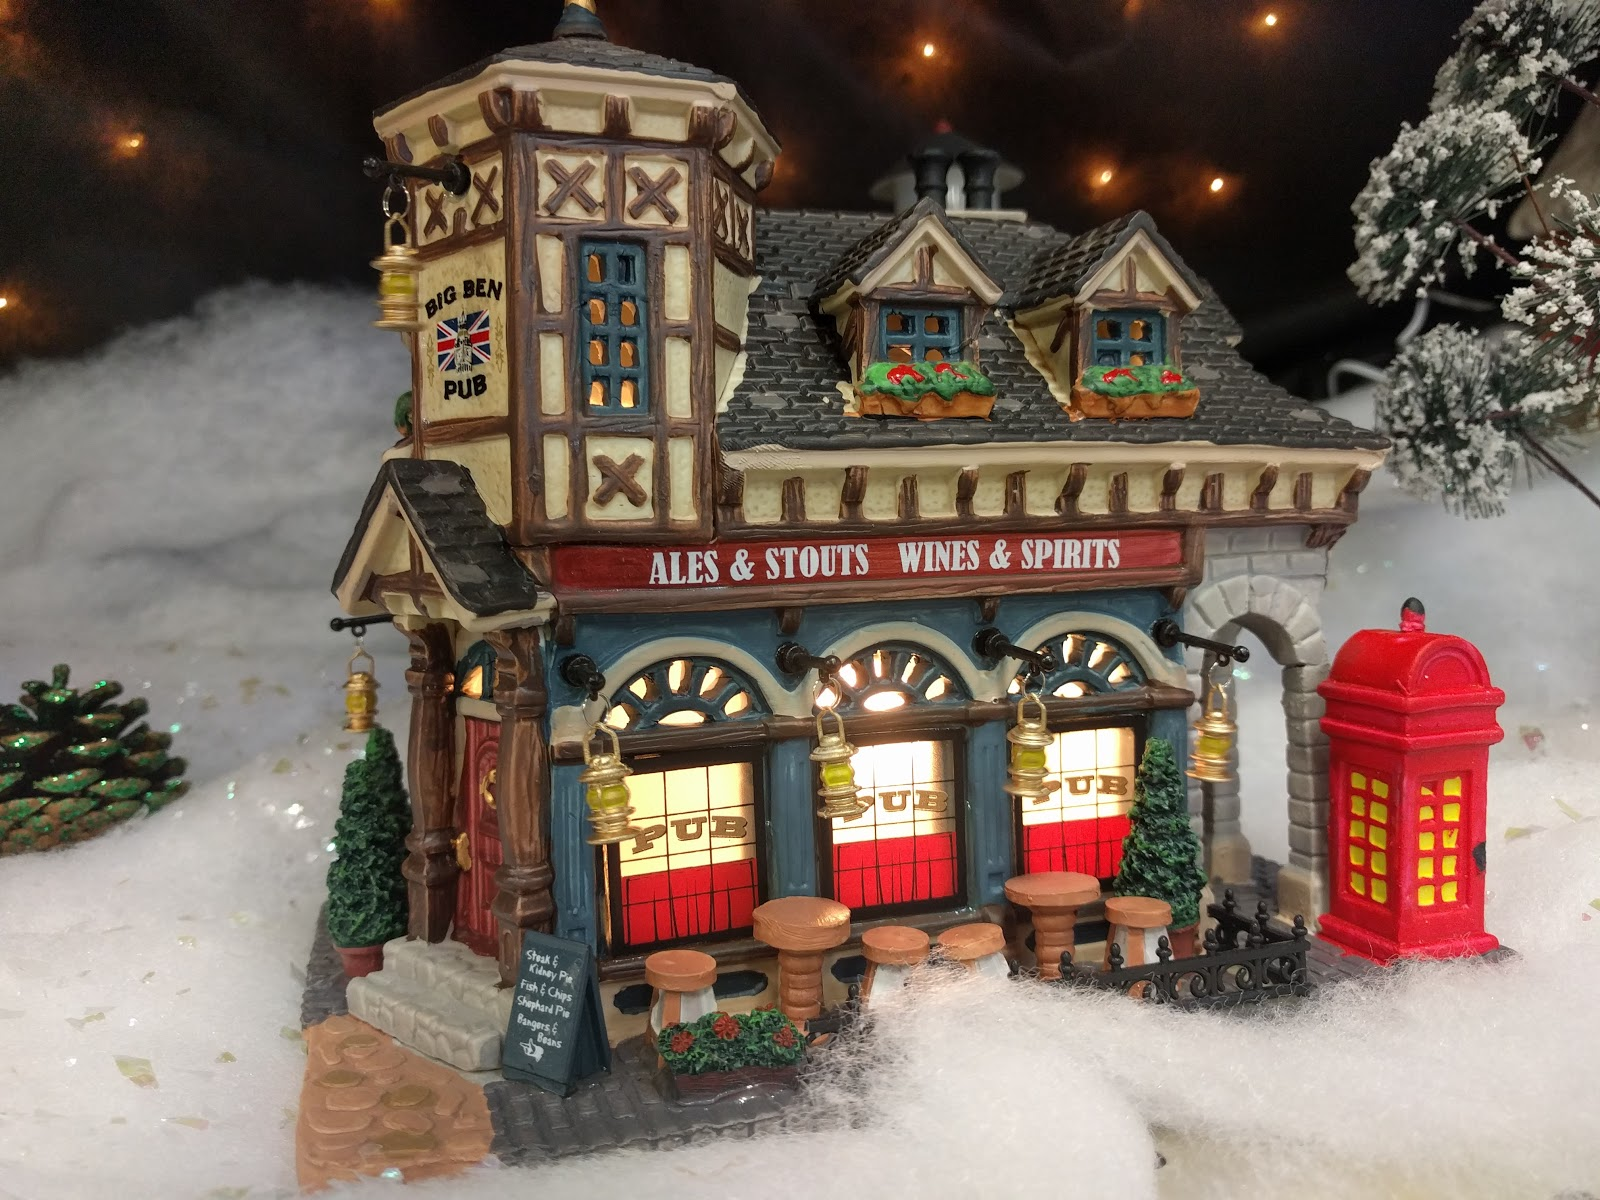 Big Ben Pub - 2012 Christmas Village from Lemax